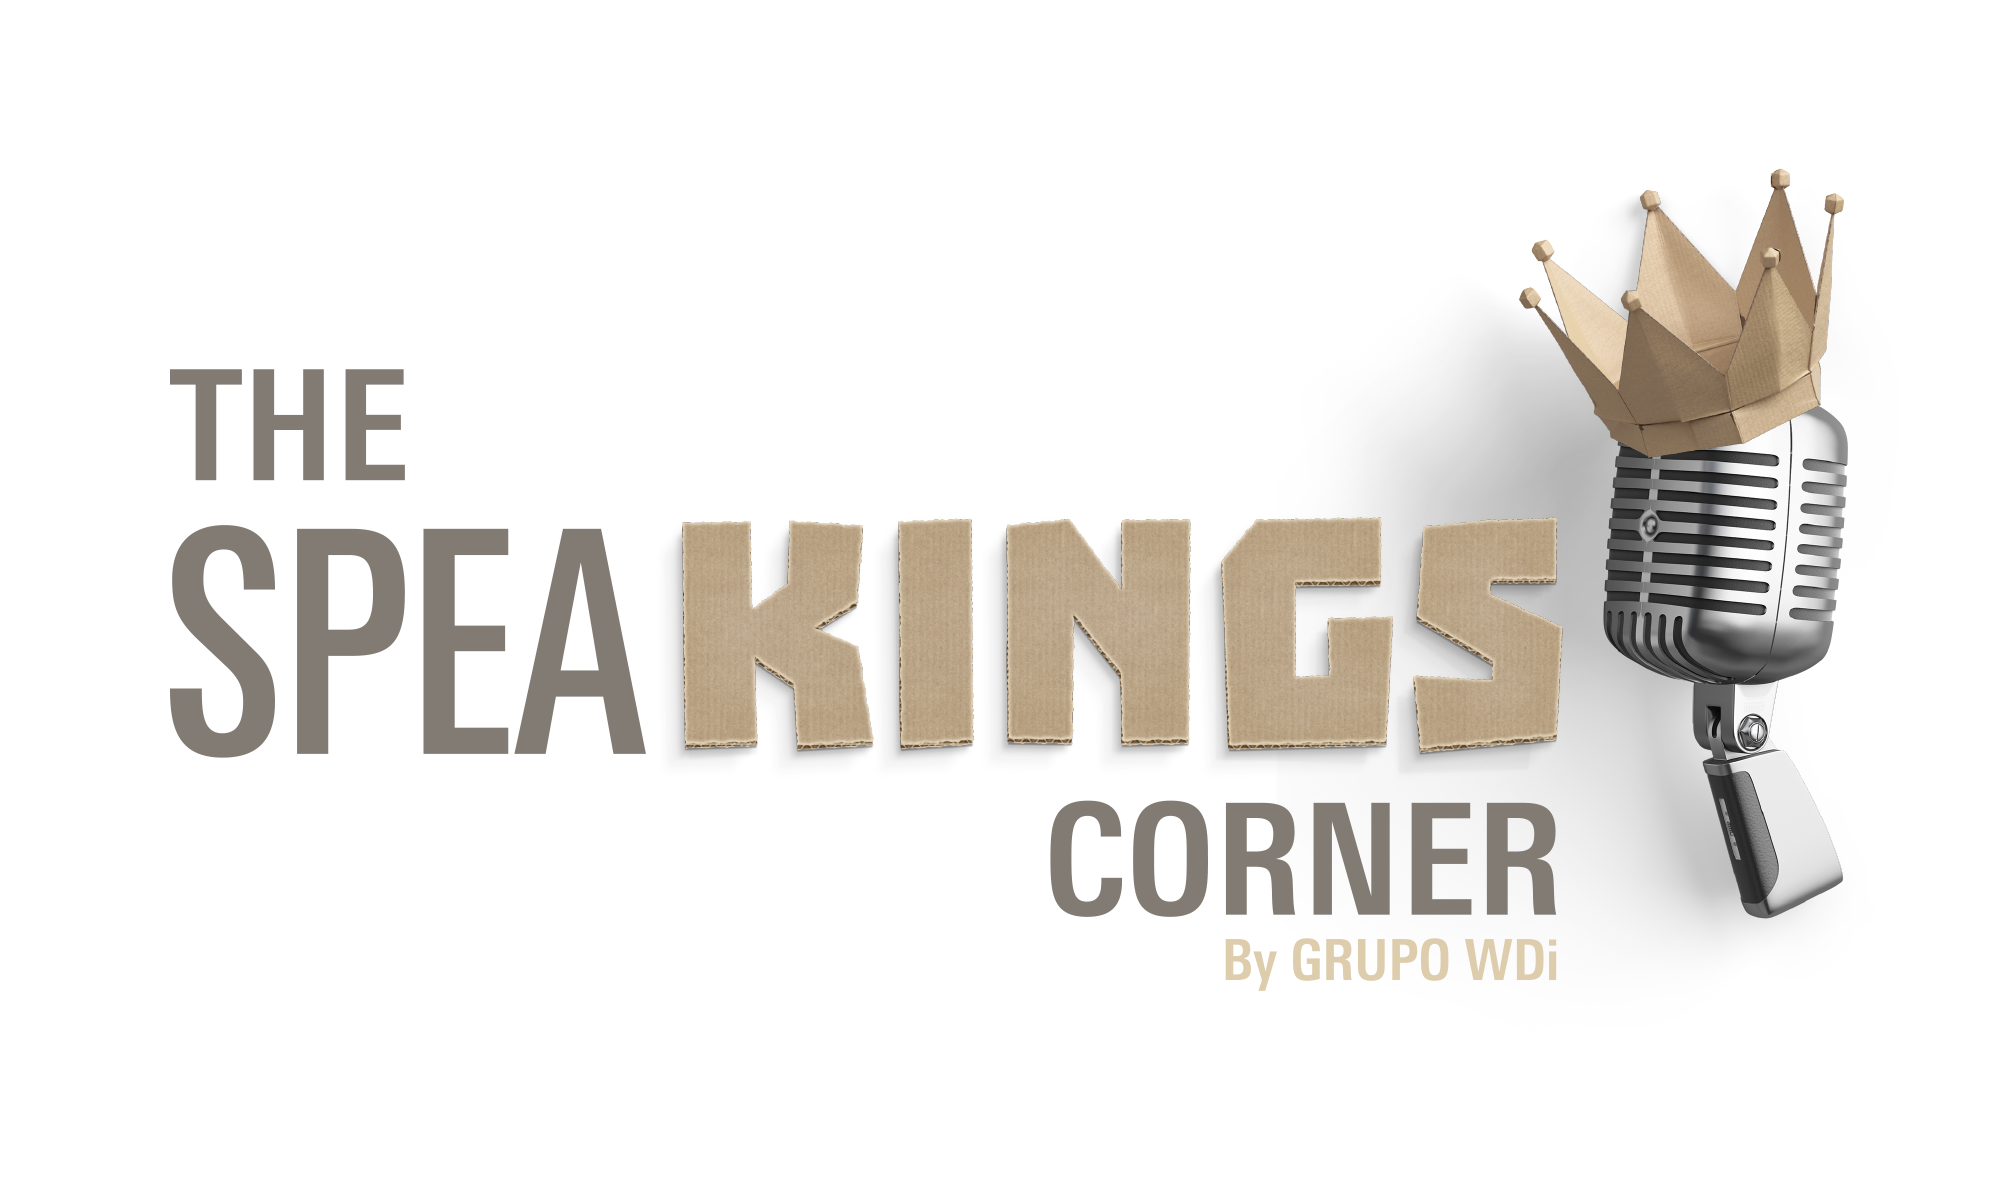 THE SPEAKINGS CORNER